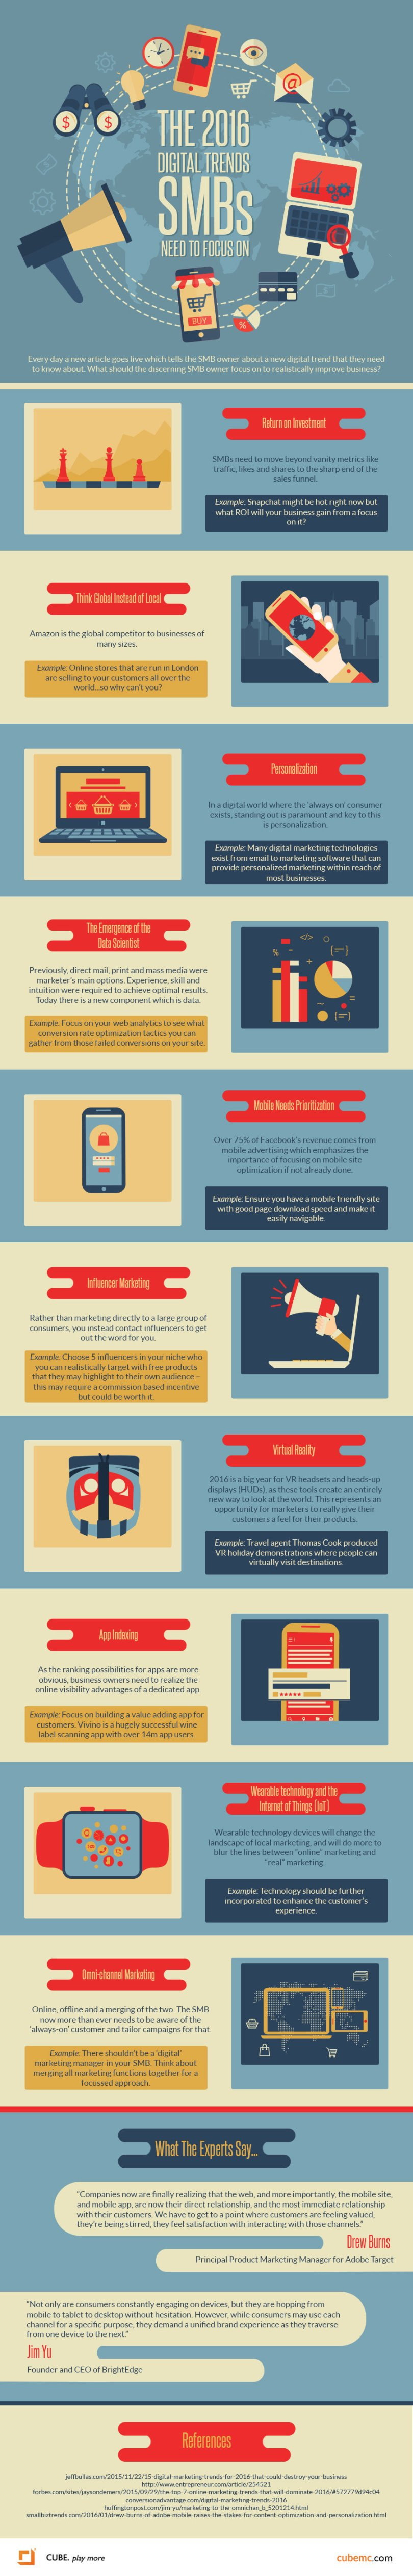 Digital-Trends-SMBs-Need-to-Know-–-Infographic